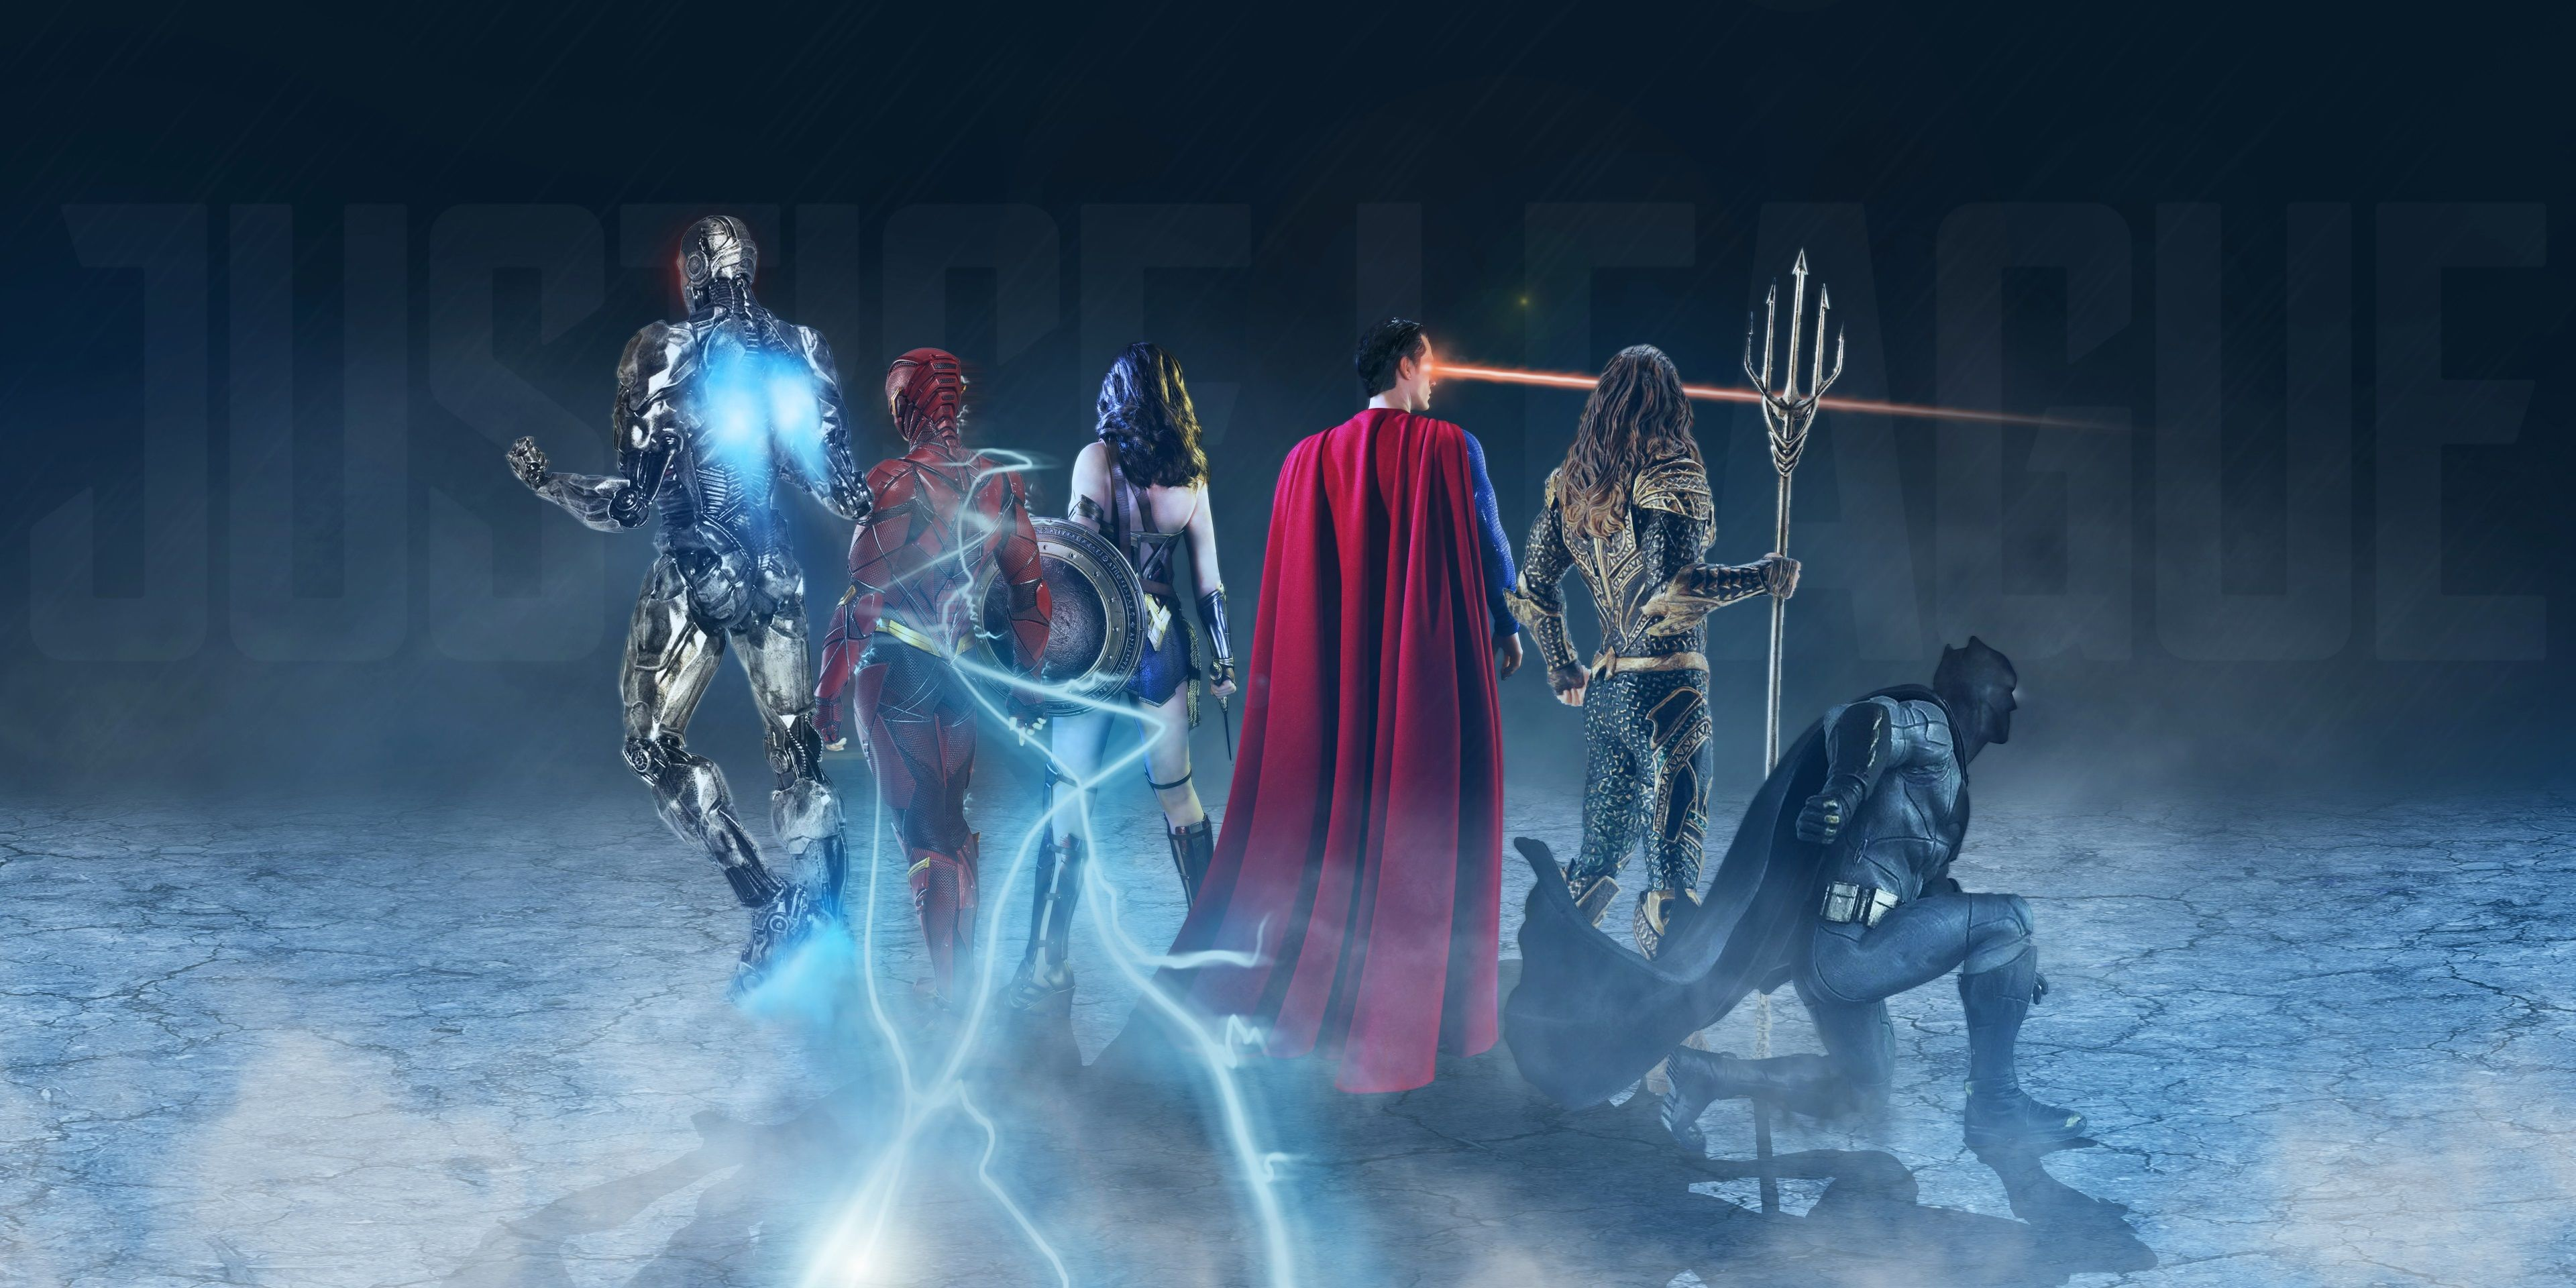 3840x1920 3840x1920 justice league 4k computer wallpaper new | wallpapers and ...